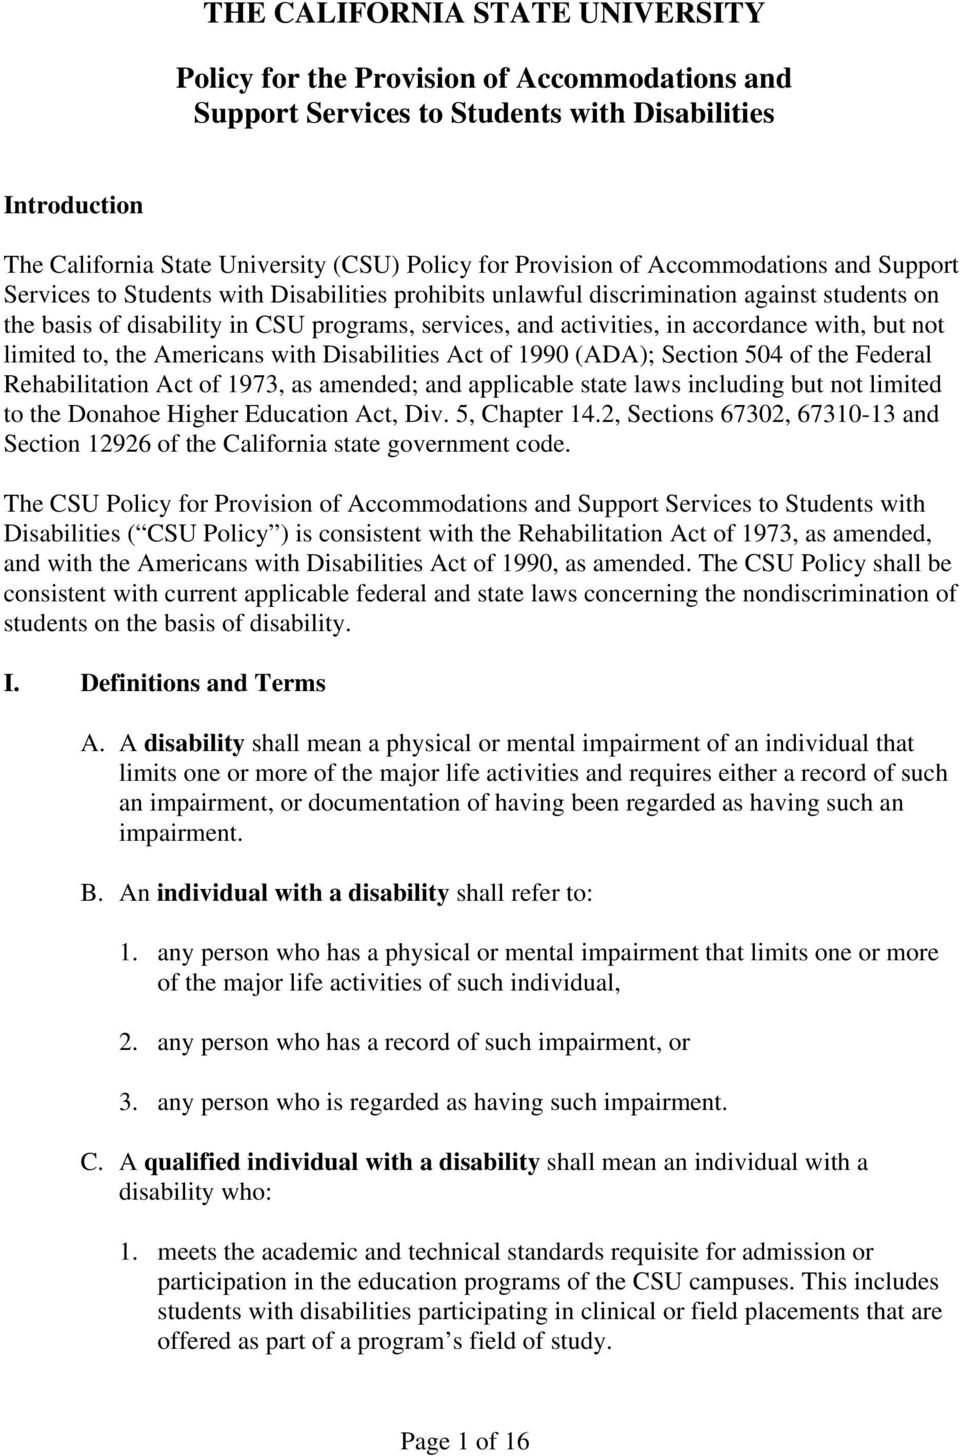 accordance with, but not limited to, the Americans with Disabilities Act of 1990 (ADA); Section 504 of the Federal Rehabilitation Act of 1973, as amended; and applicable state laws including but not